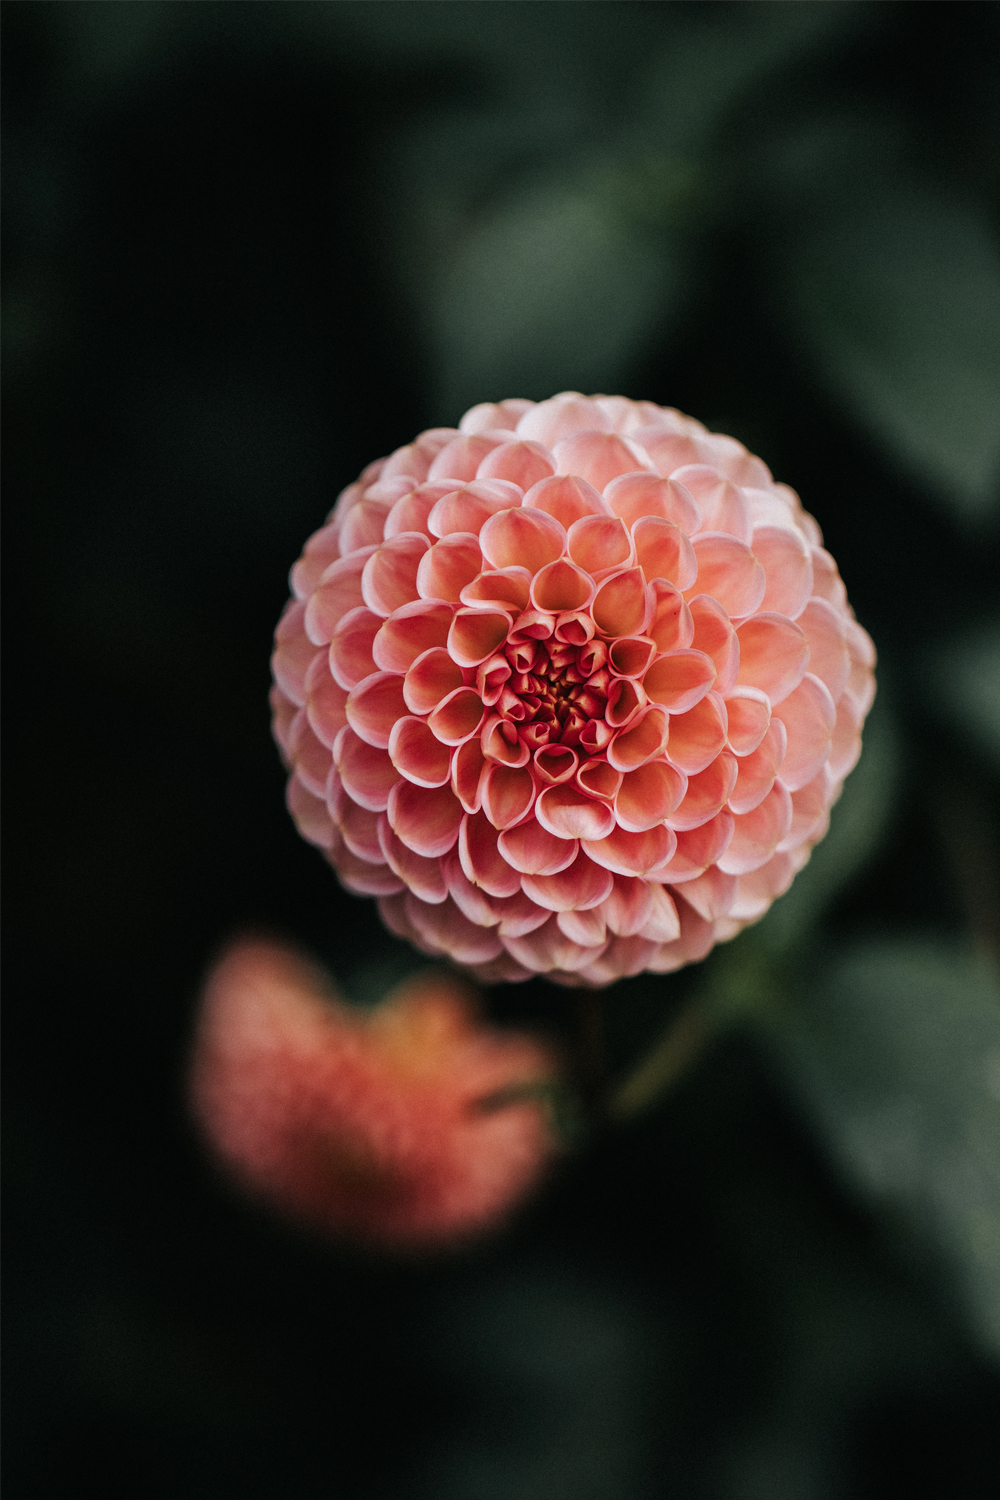 a close-up picture of a dahlia flower head